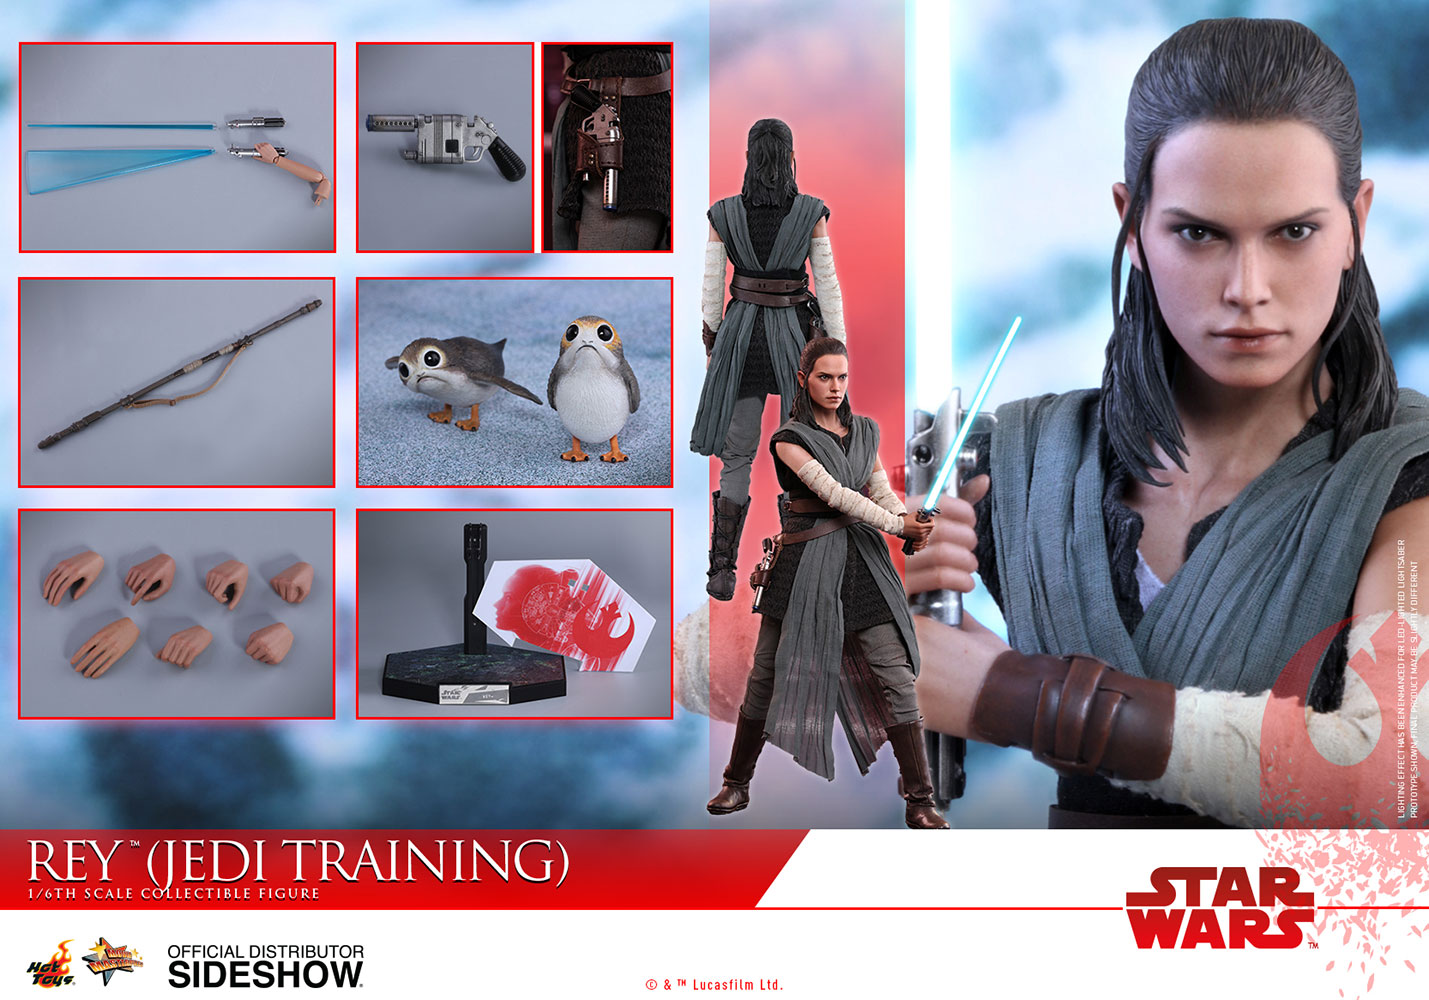 star-wars-the-last-jedi-rey-jedi-training-sixth-scale-hot-toys-903205-21